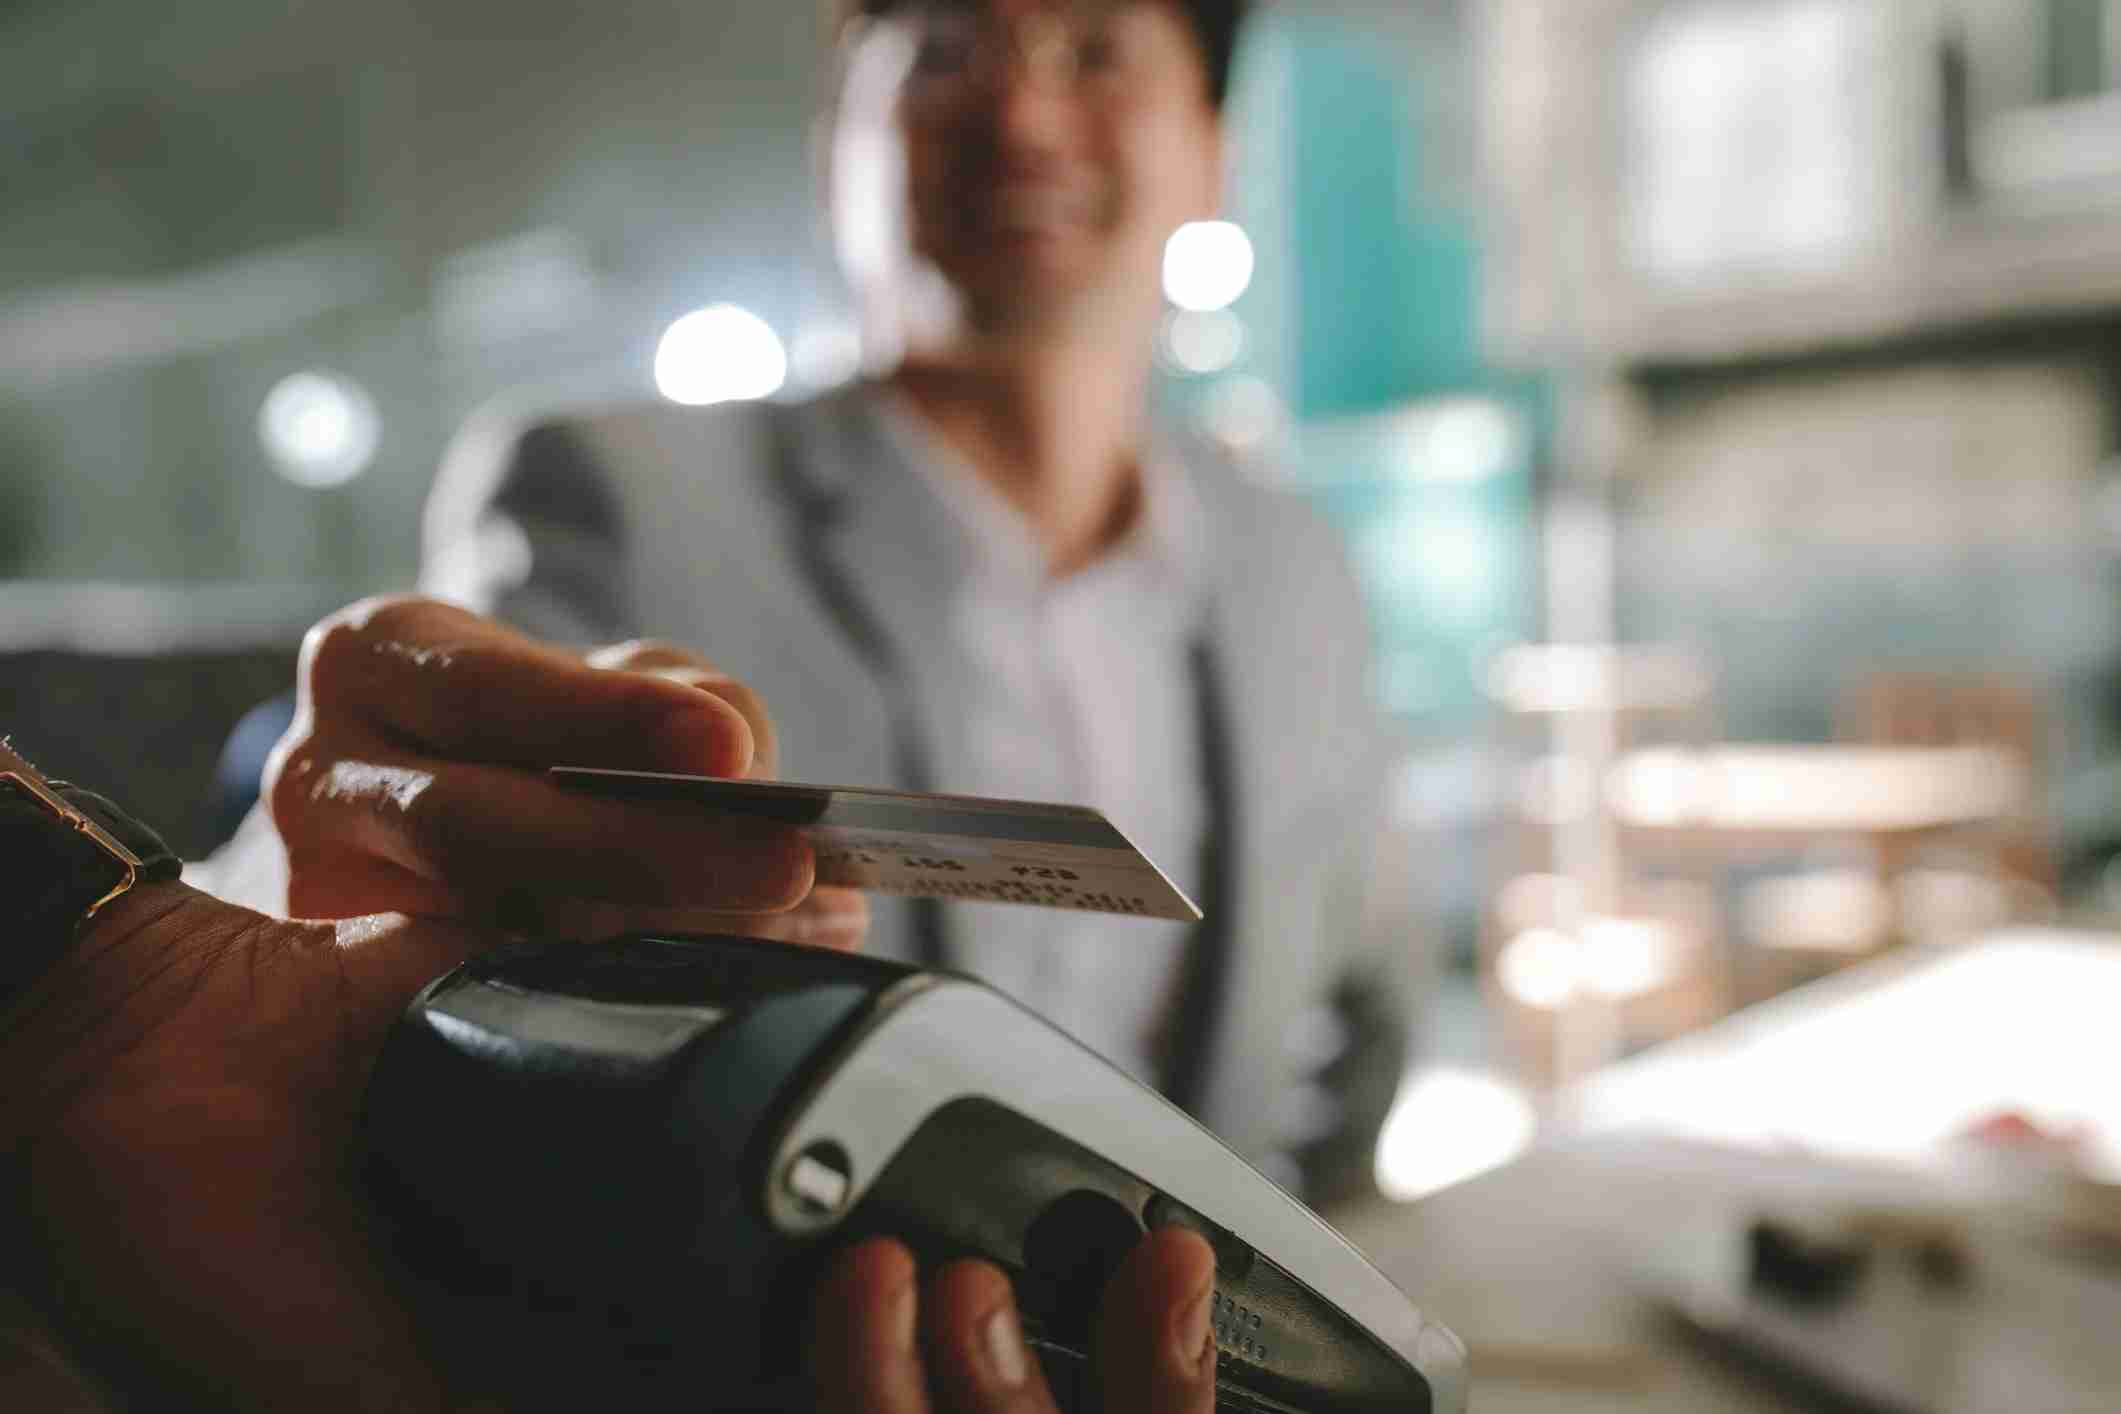 Close up of businessman paying with contactless credit card with nfc technology at restaurant. Focus on man holding his credit card above the card reading machine.